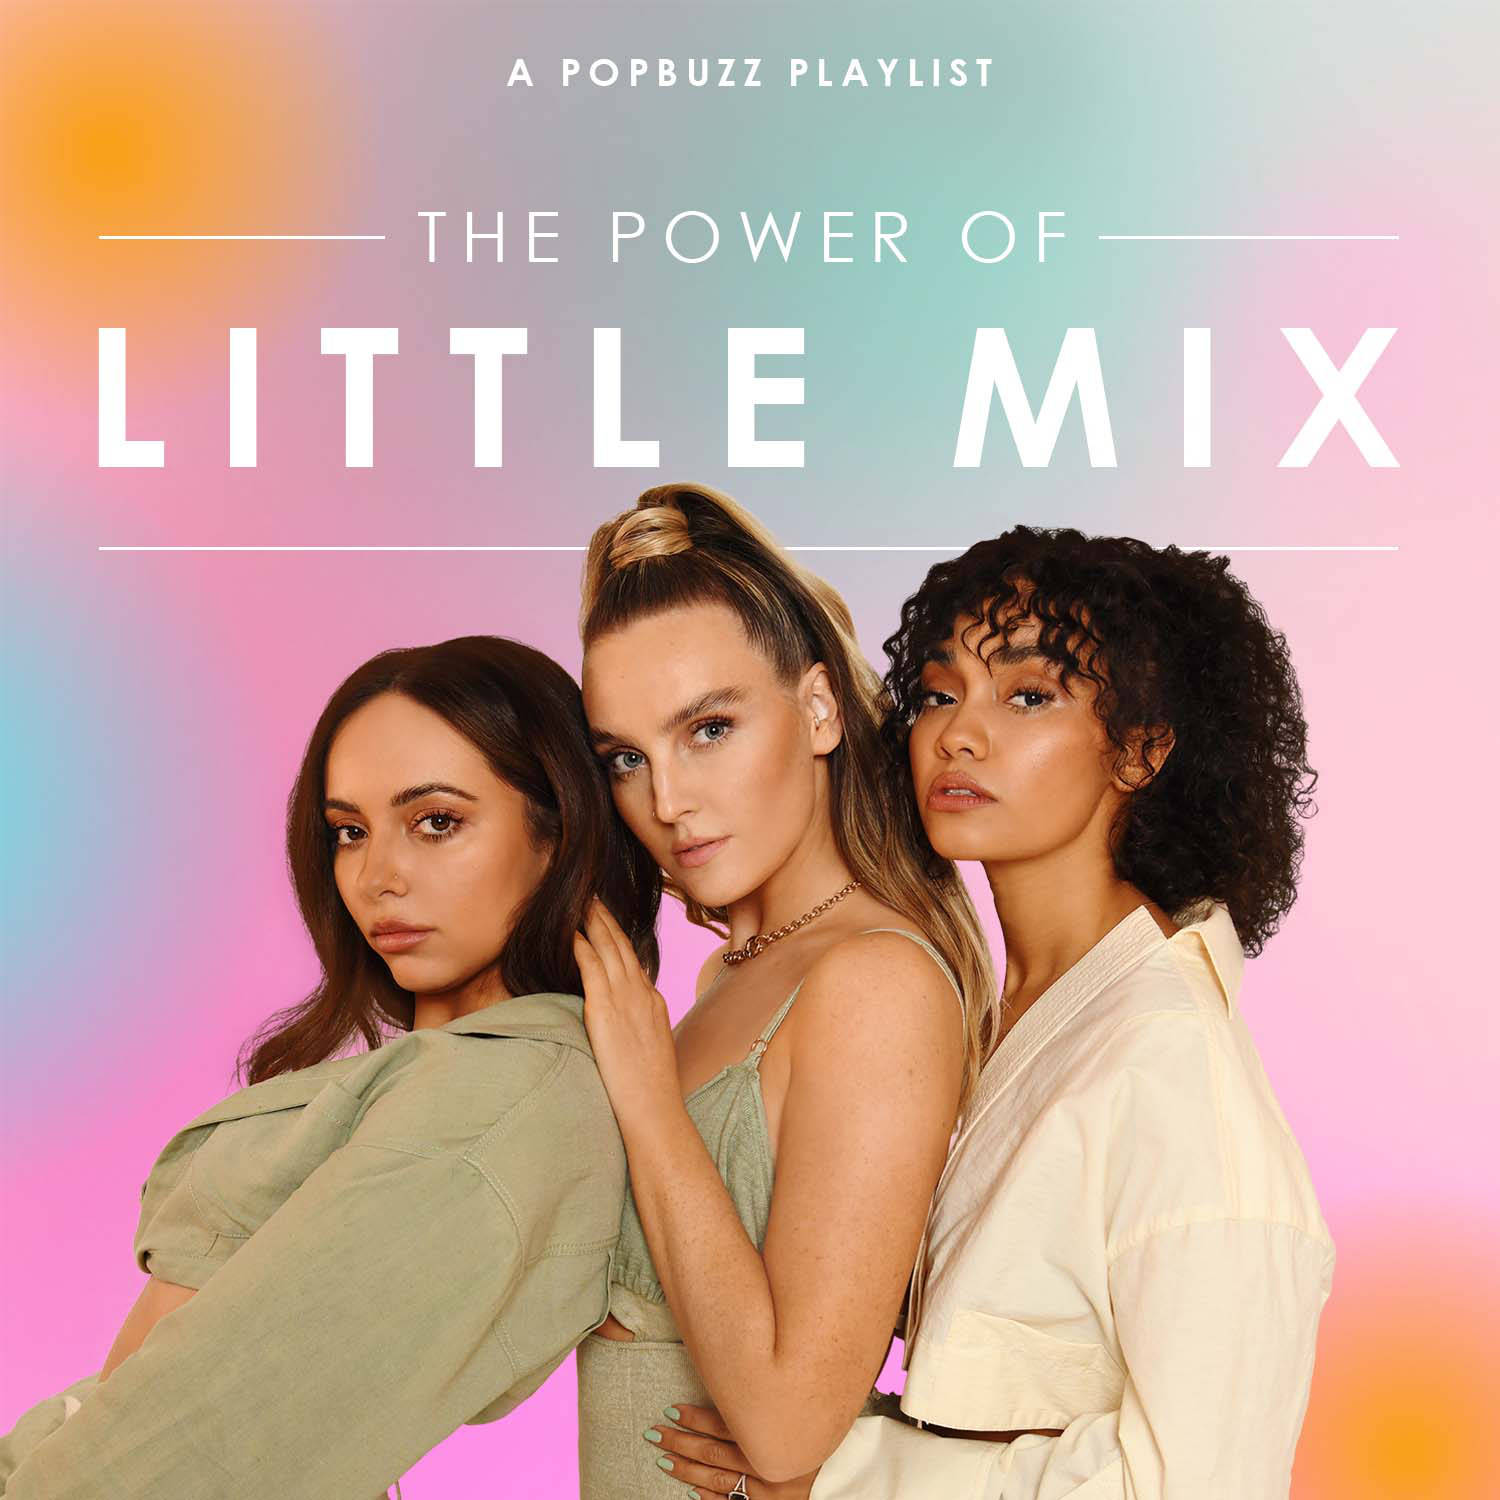 The Power Of Little Mix image